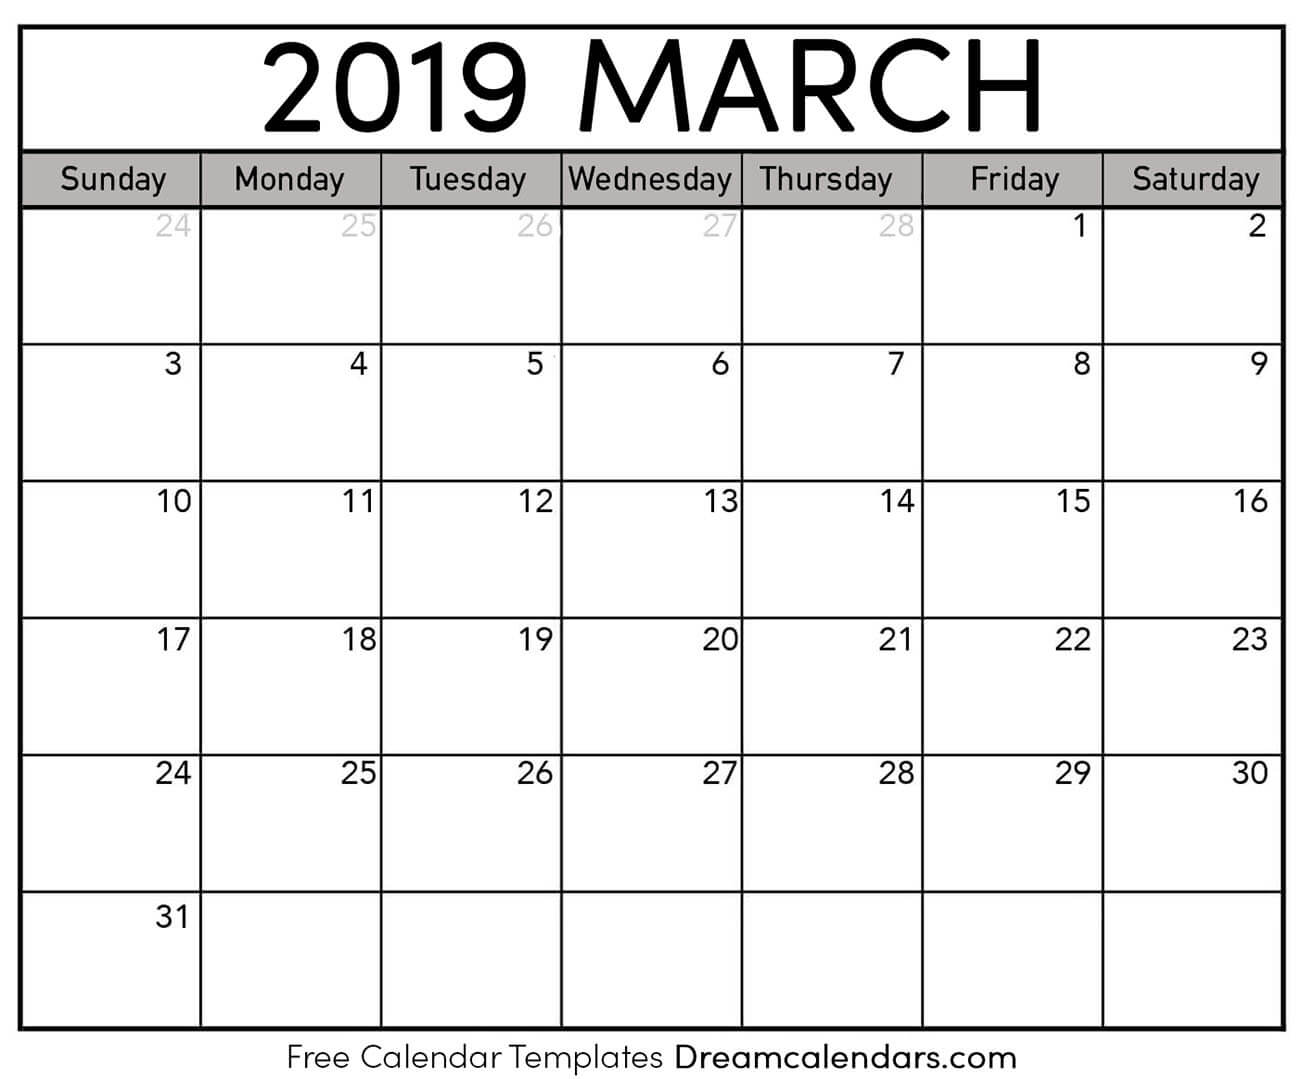 graphic relating to Free Printable March Calendar titled March 2019 Calendar